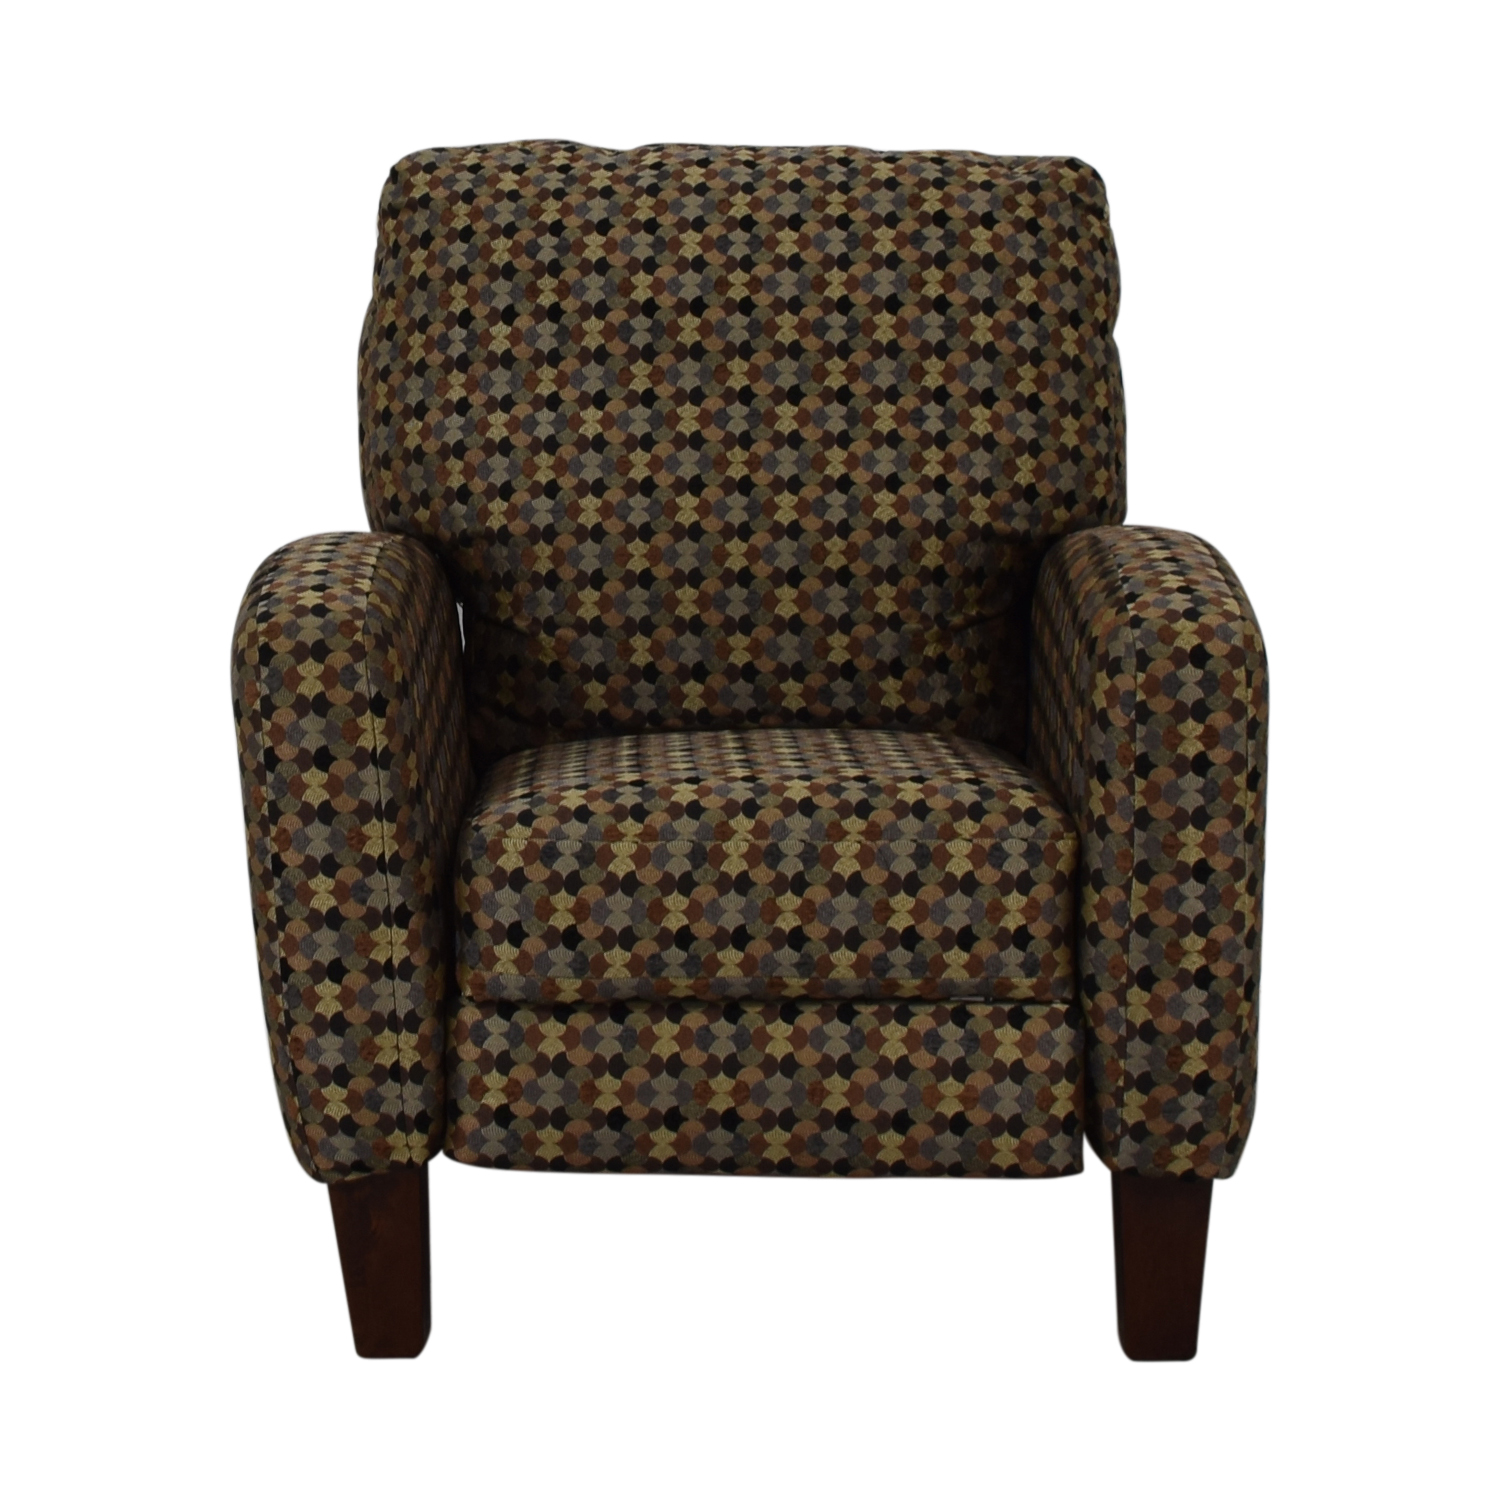 Southern Motion Kelley Tango Teal Multi-Colored Accent Recliner Tango Teal pattern